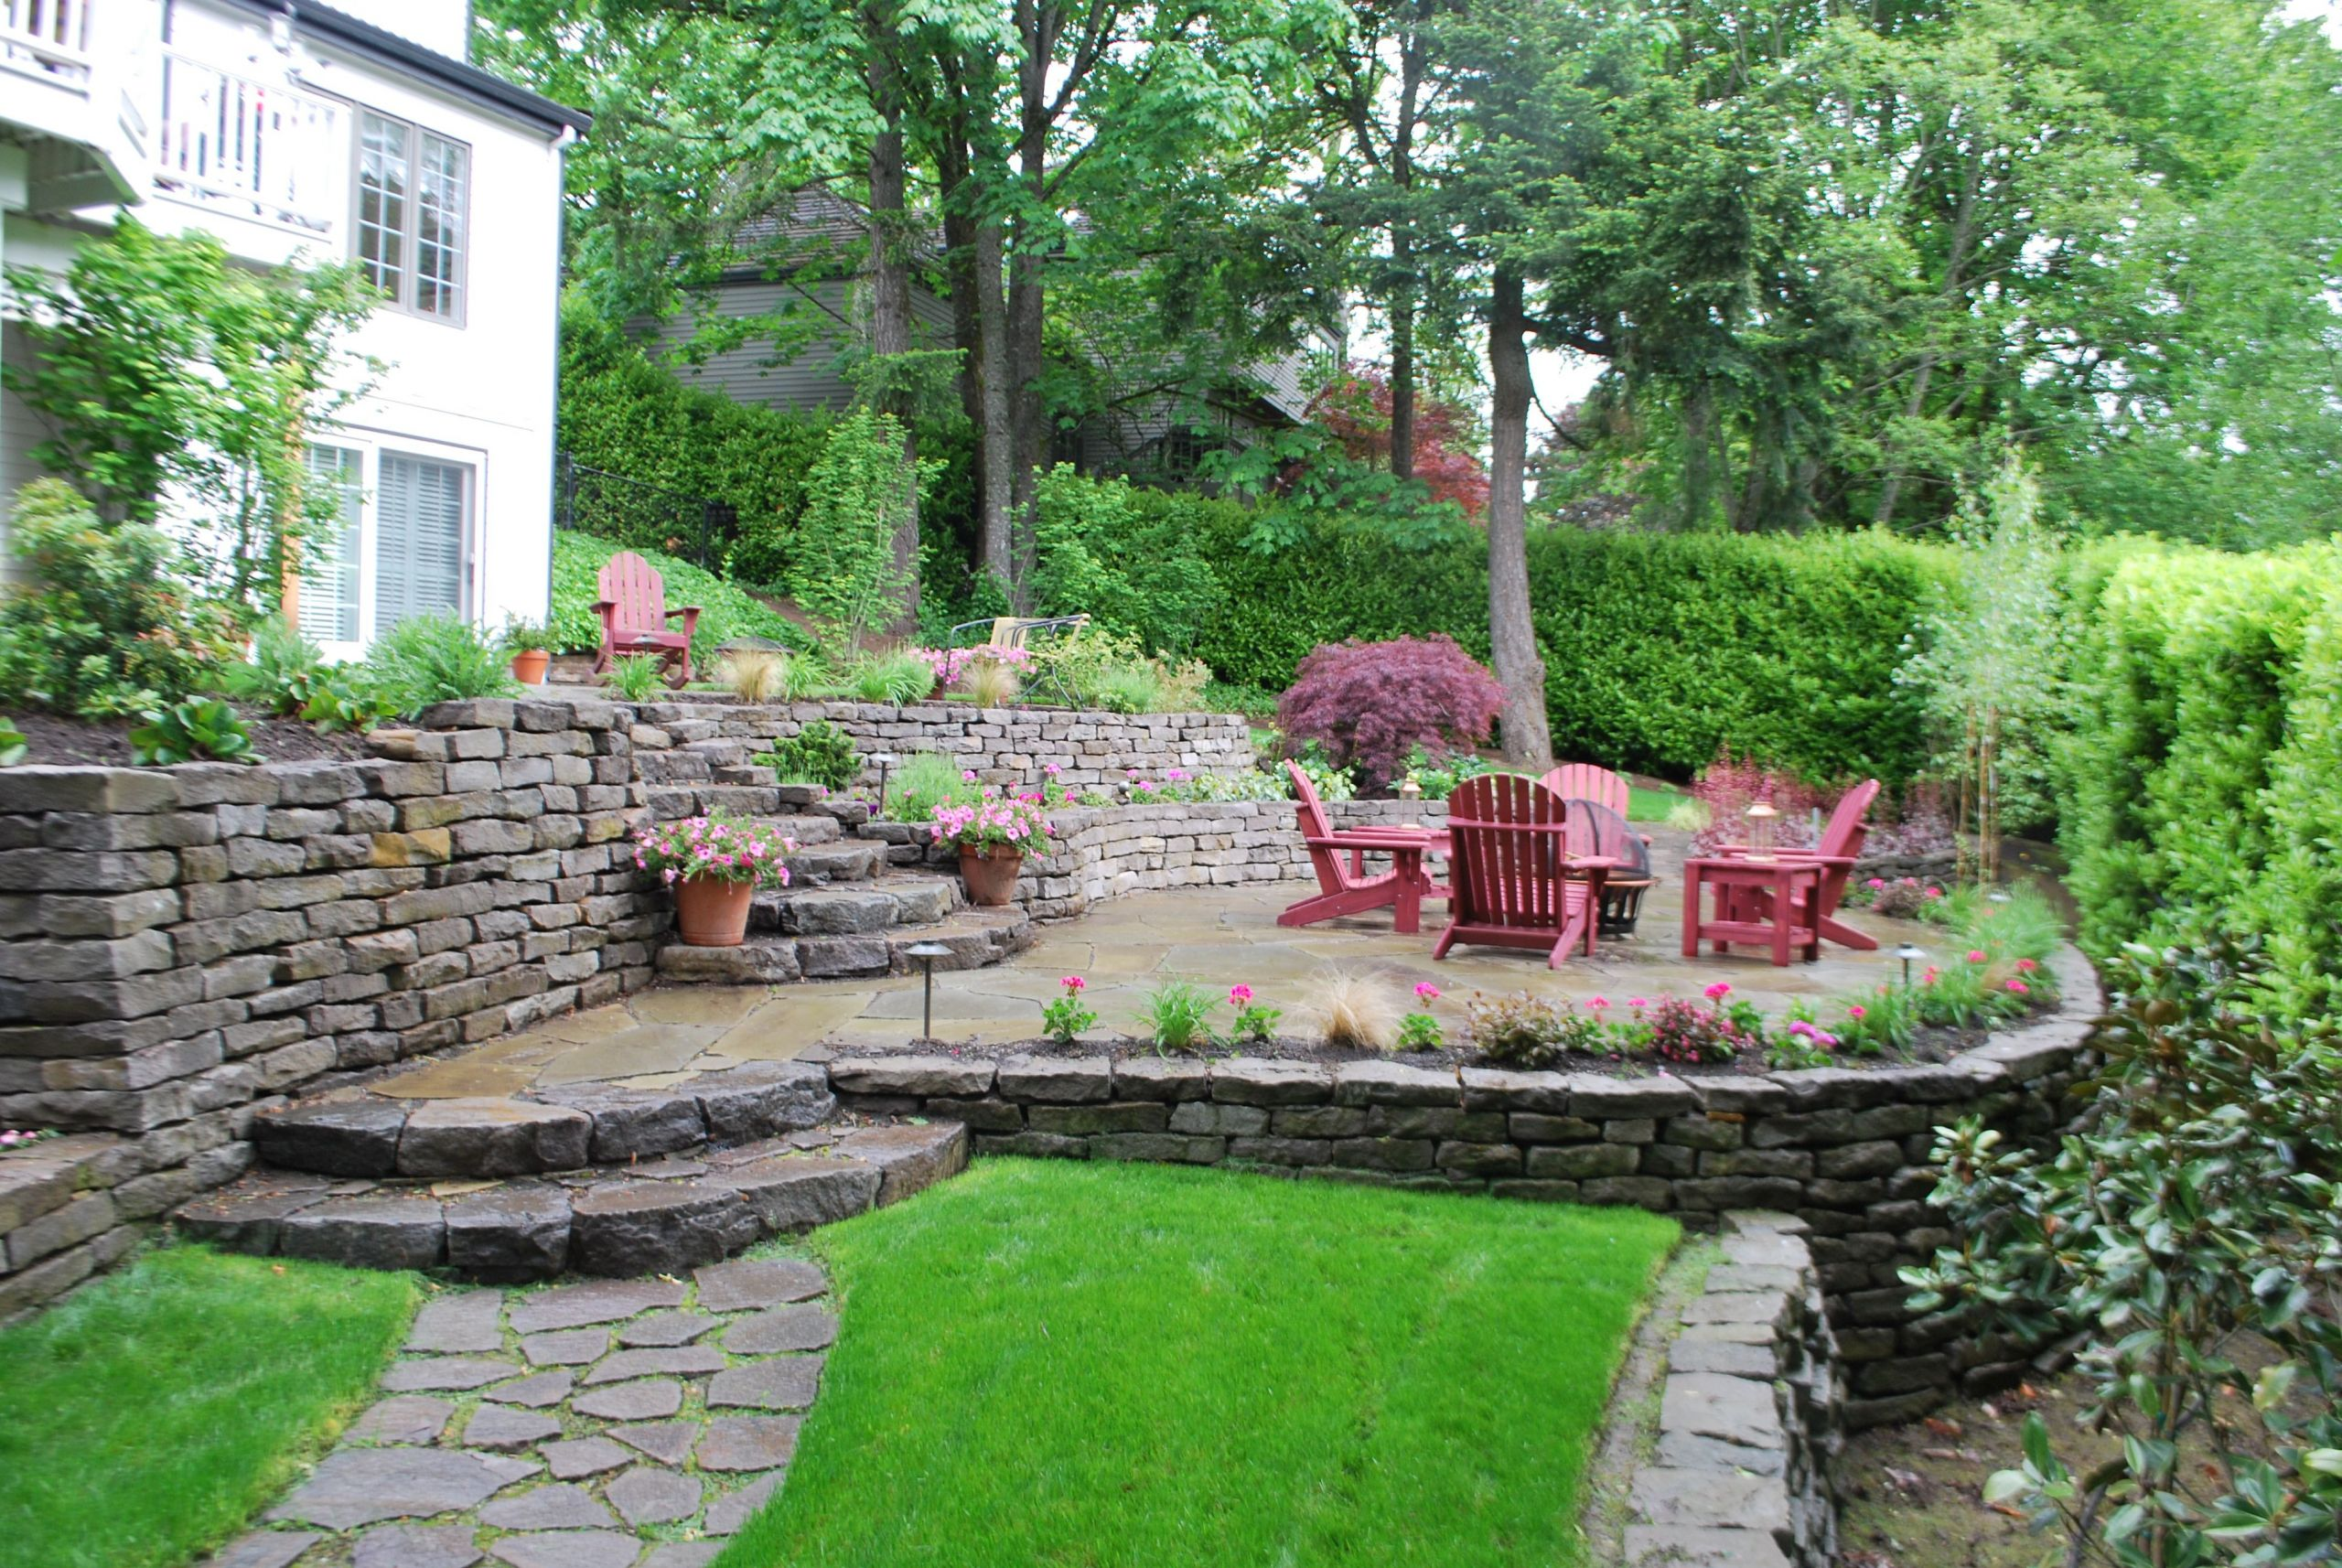 Terrace Landscape Sloped Yard  Tiered patio design sloping away from home with